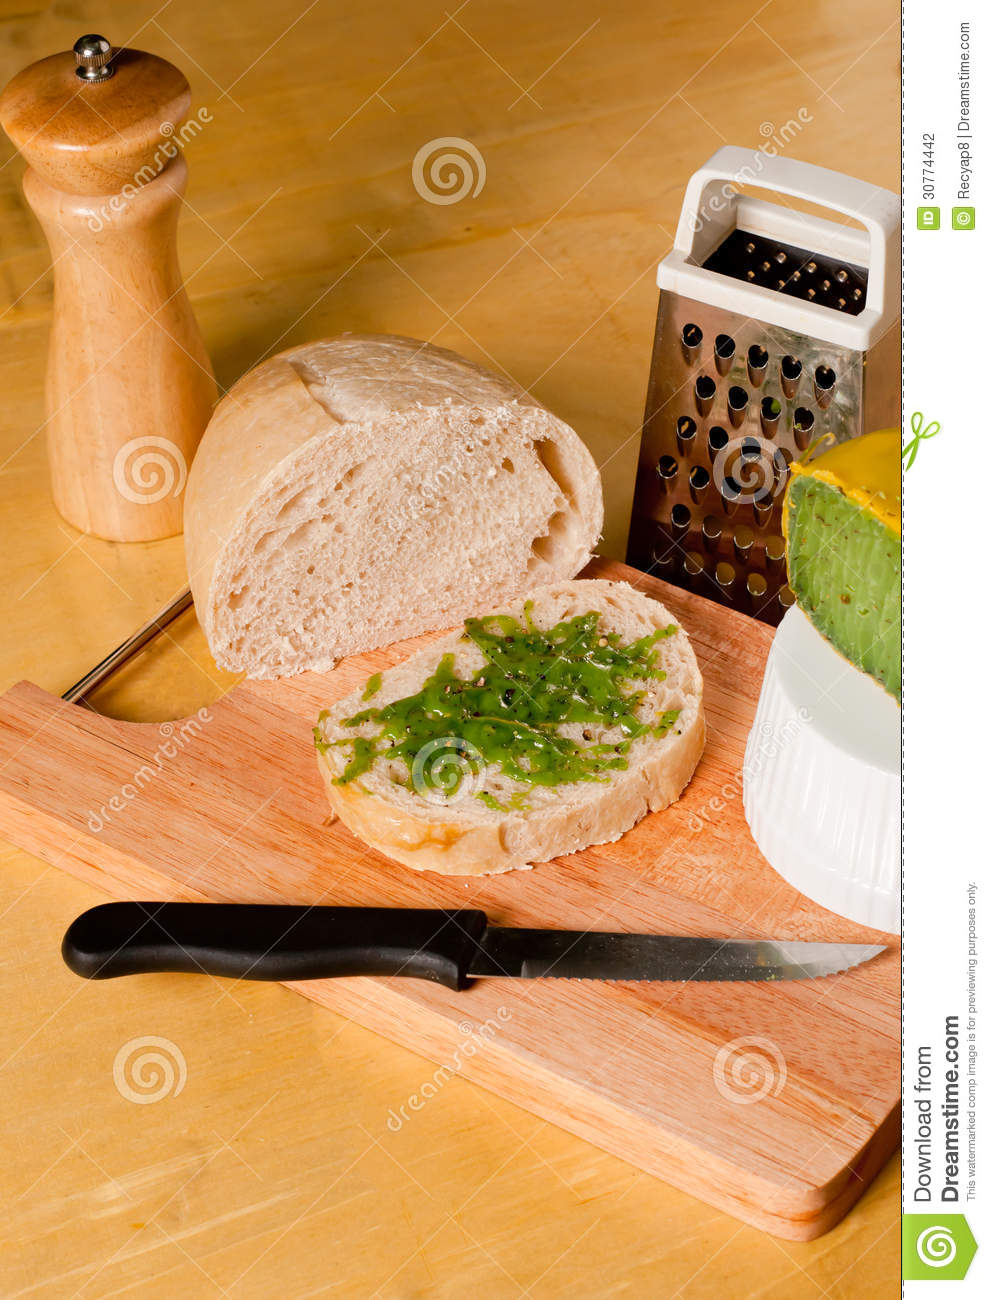 Sourdough With Mozzarella Pesto Stock Photography - Image: 30774442